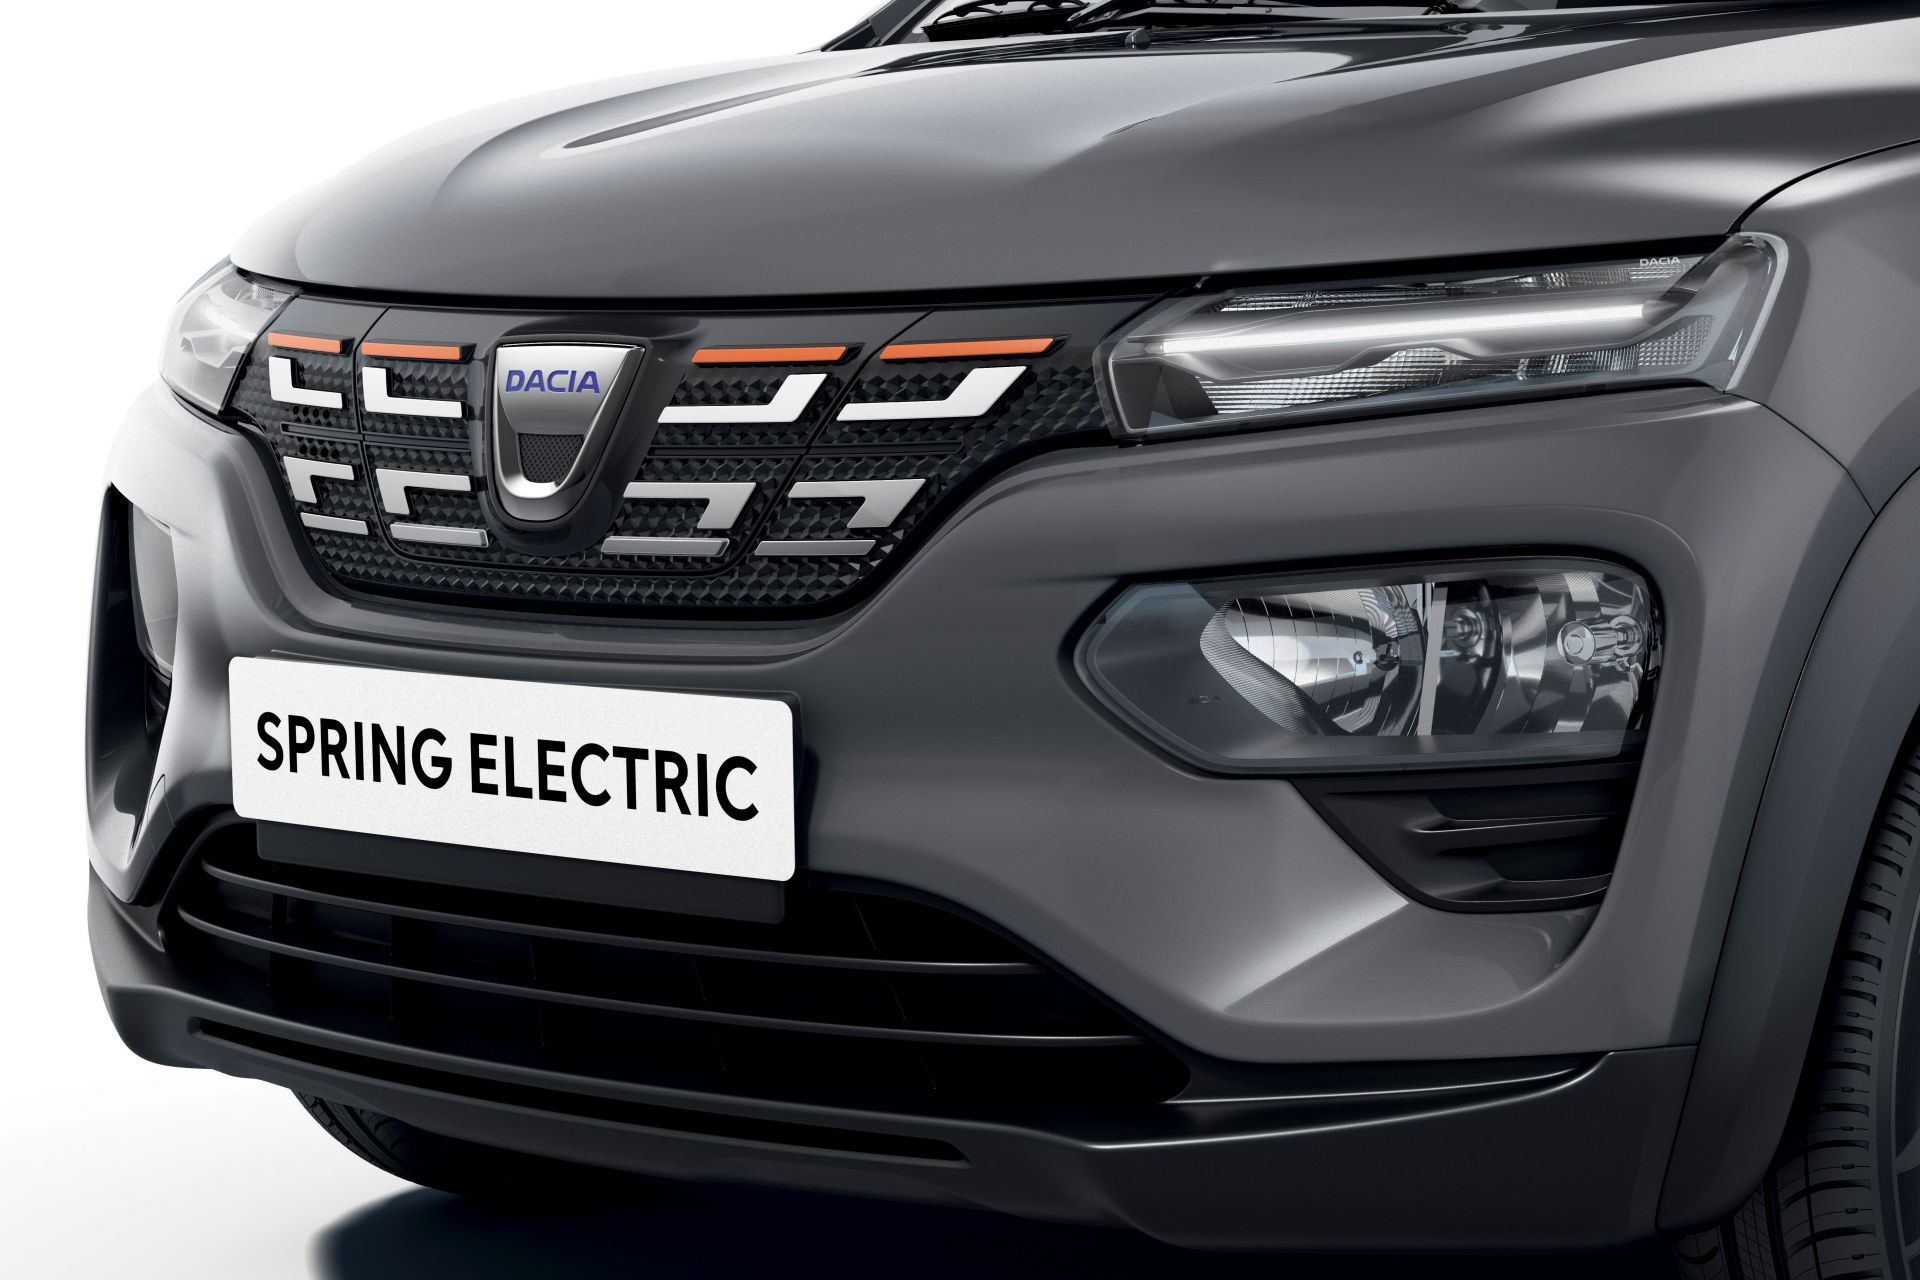 Dacia-Spring-Electric-12